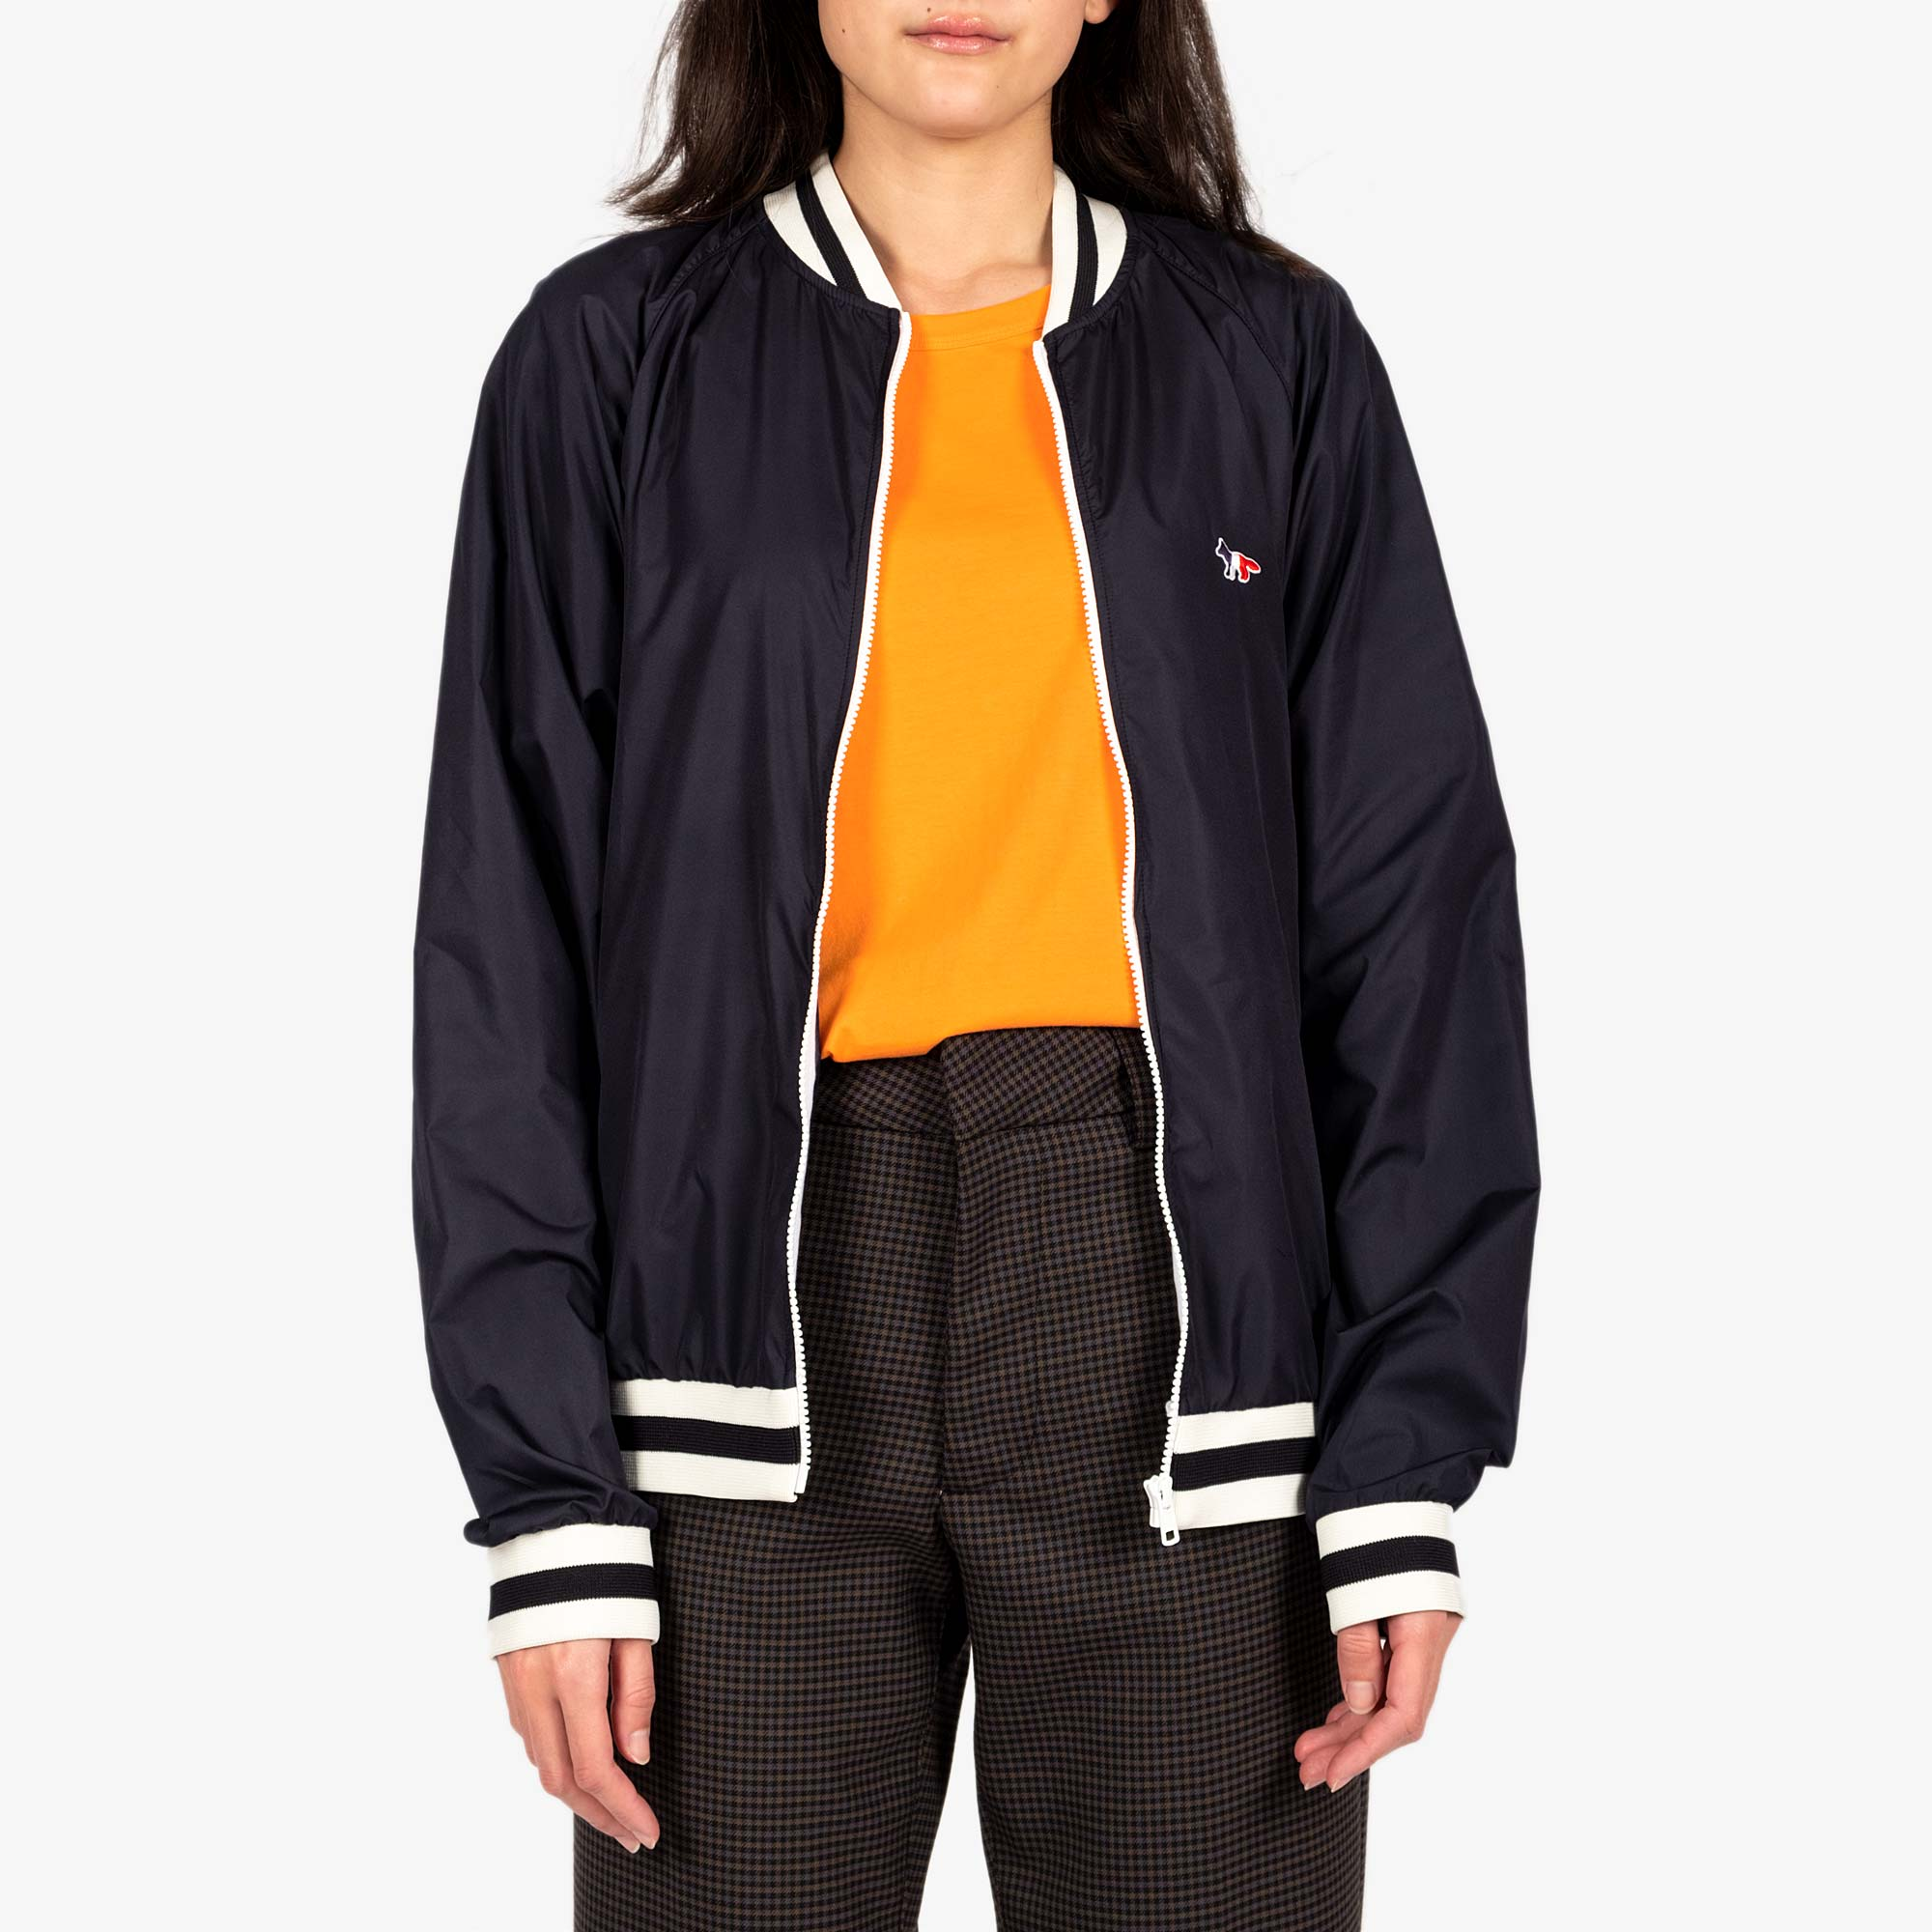 Maison Kitsune Womens Windbreaker - Navy 1